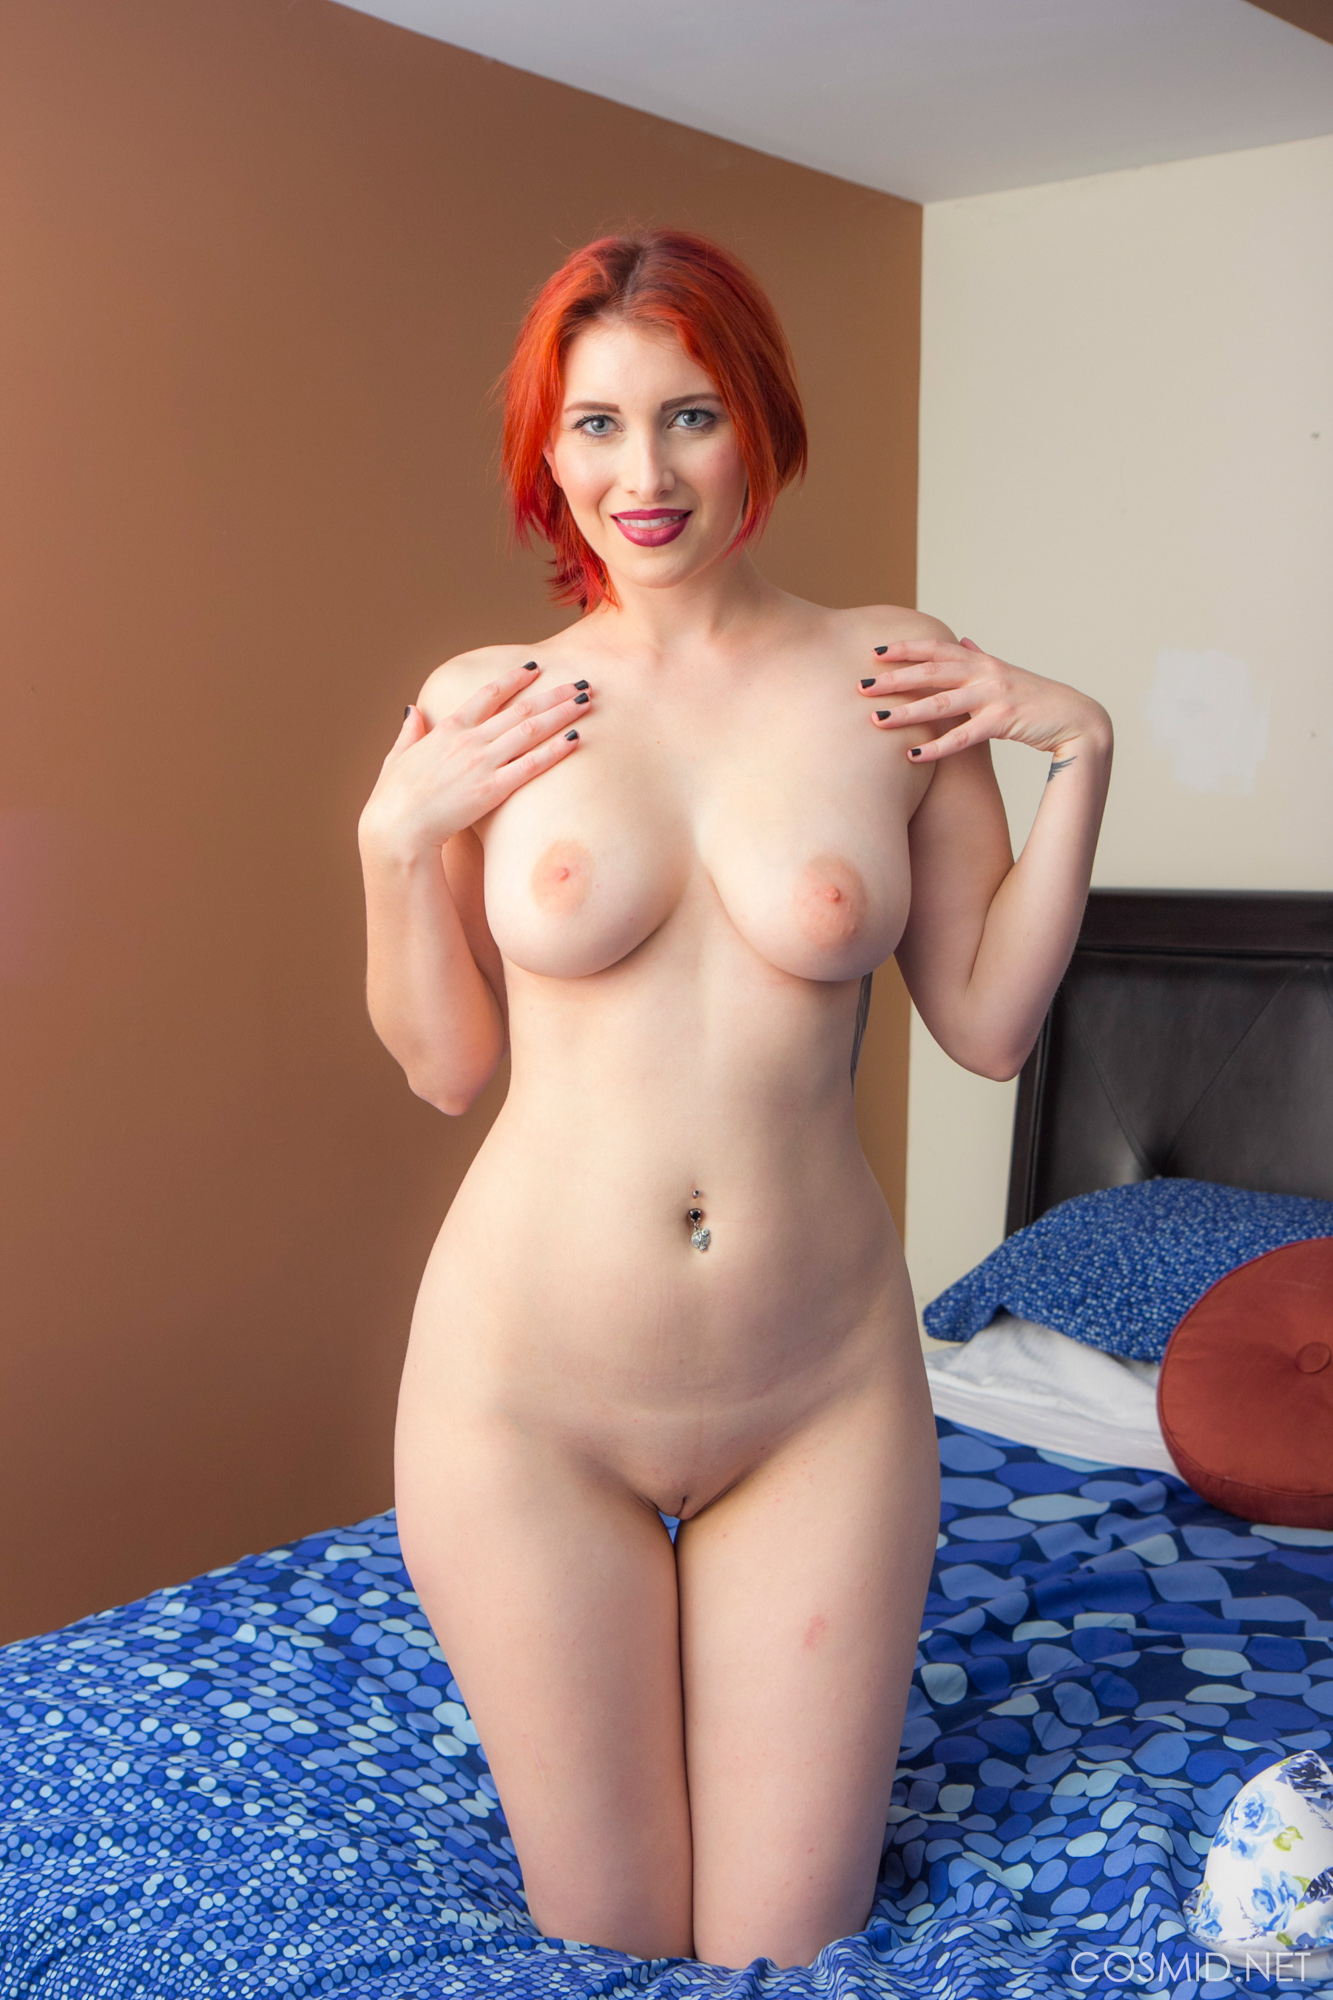 military-redheads-nudes-free-shaved-big-tits-dripping